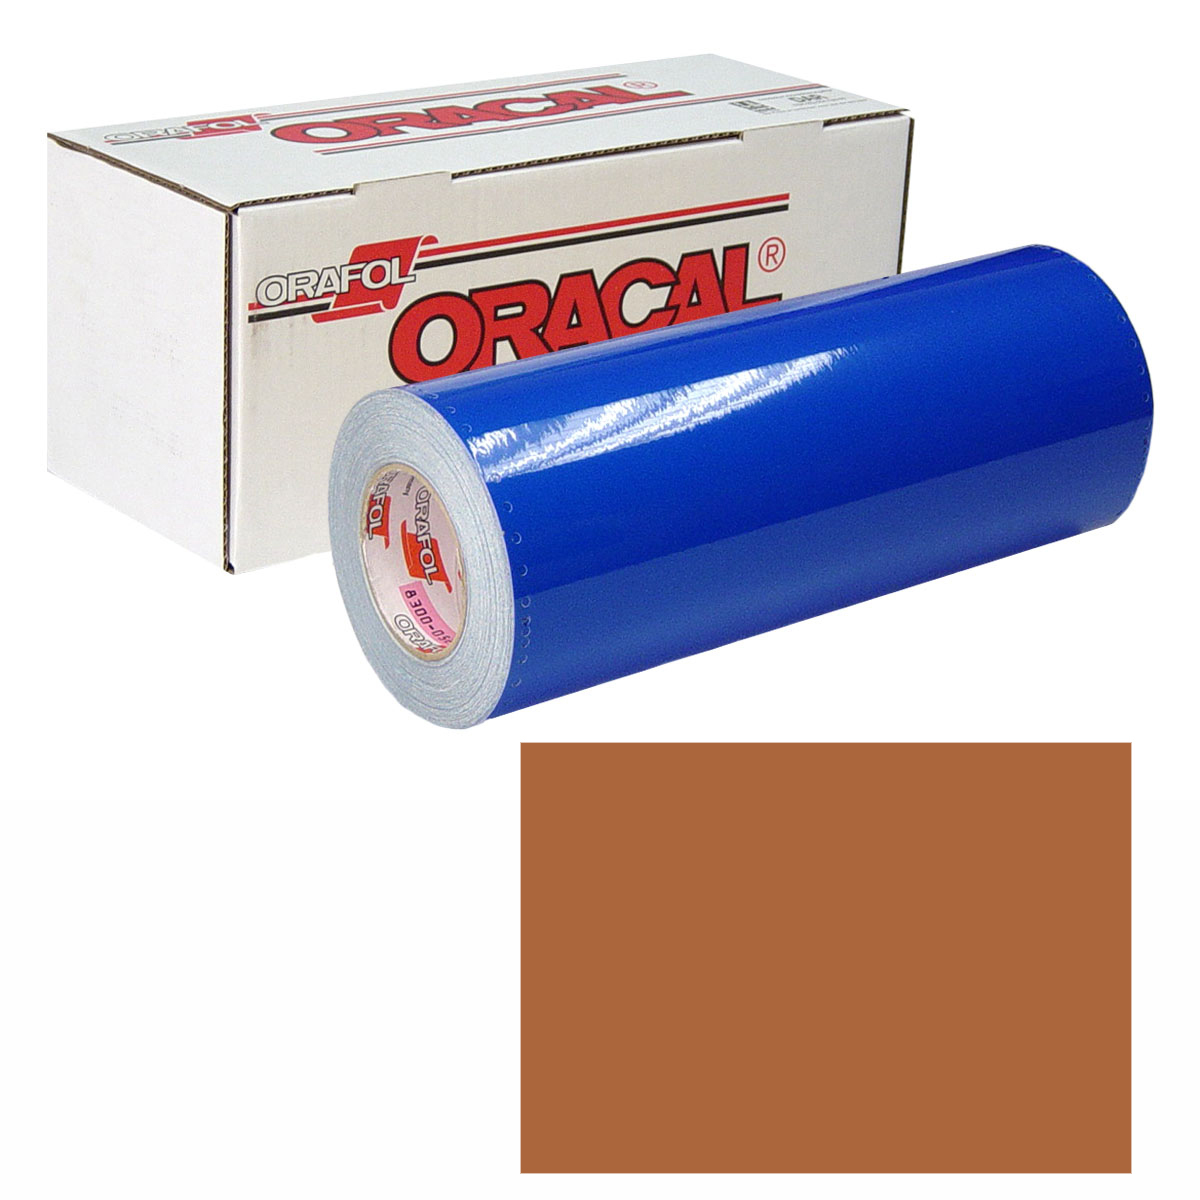 ORACAL 631 Unp 24In X 50Yd 092 Copper Met